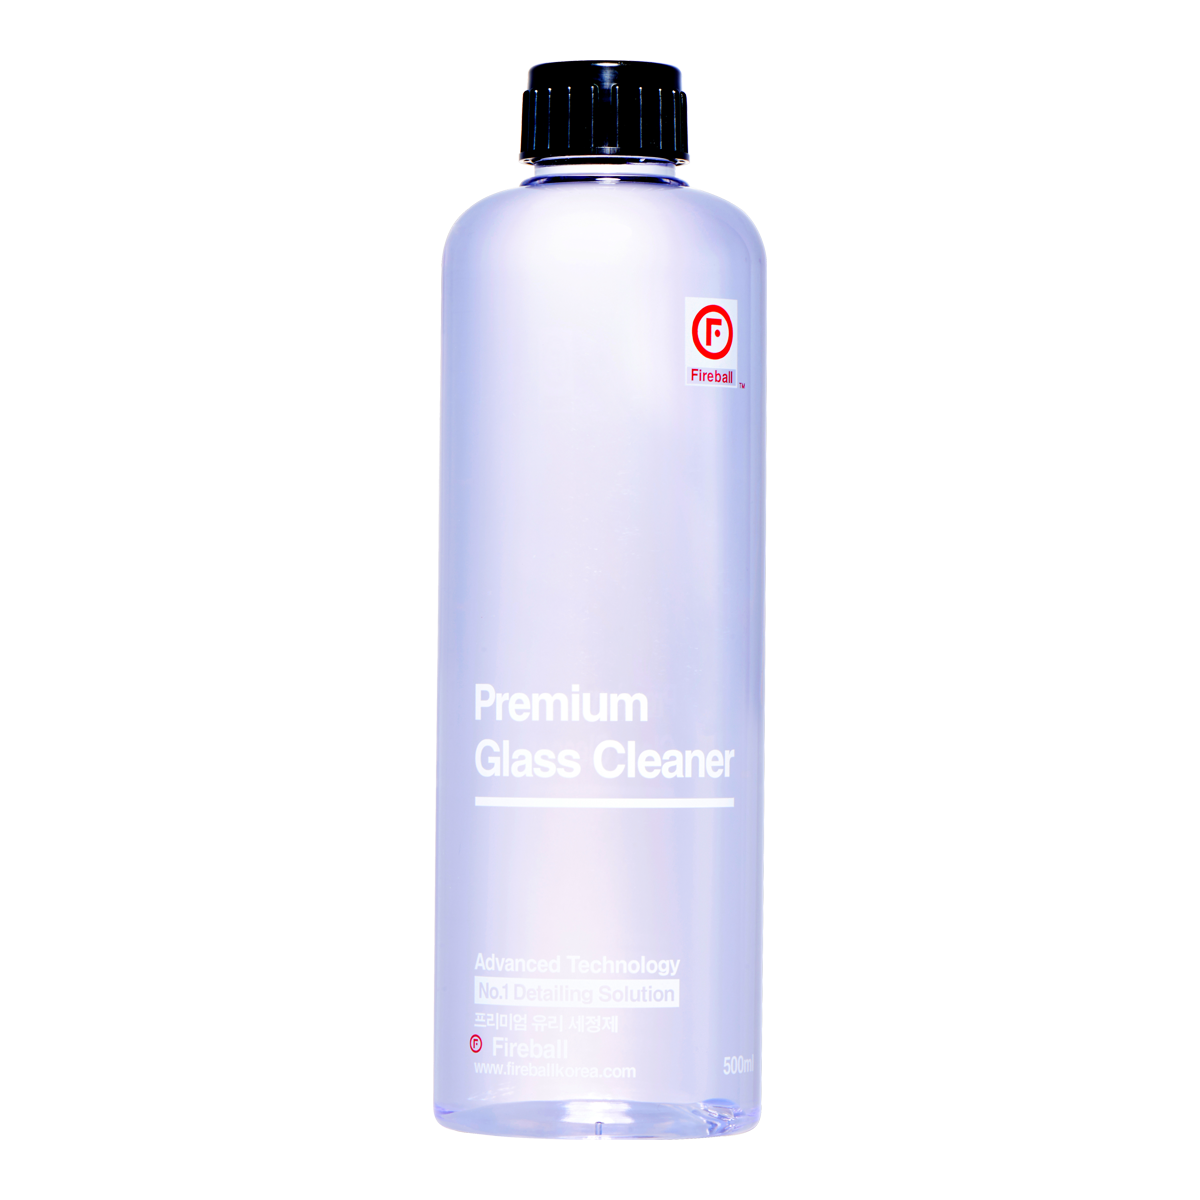 Premium Glass Cleaner - Foamee